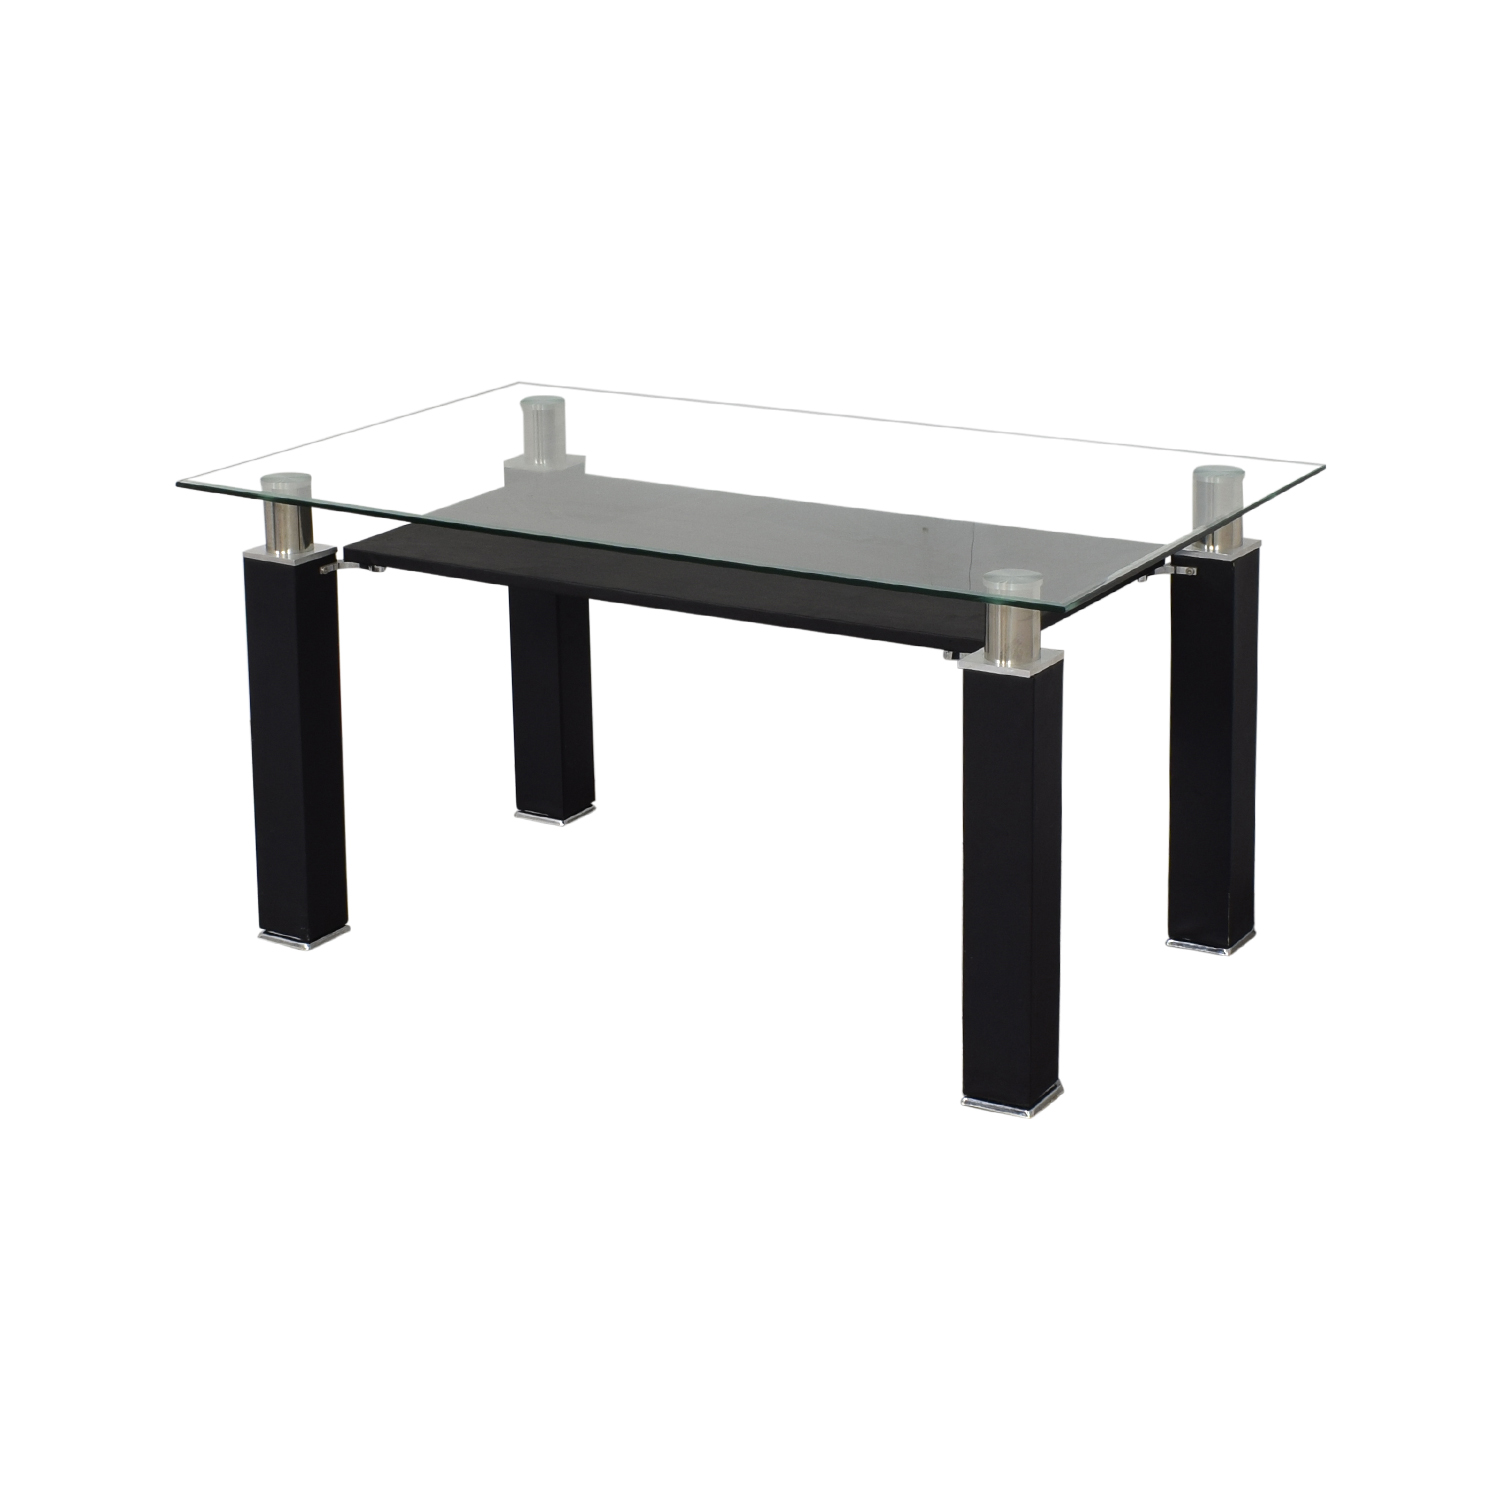 Acme Acme Furniture Modern Glass Dining Table second hand